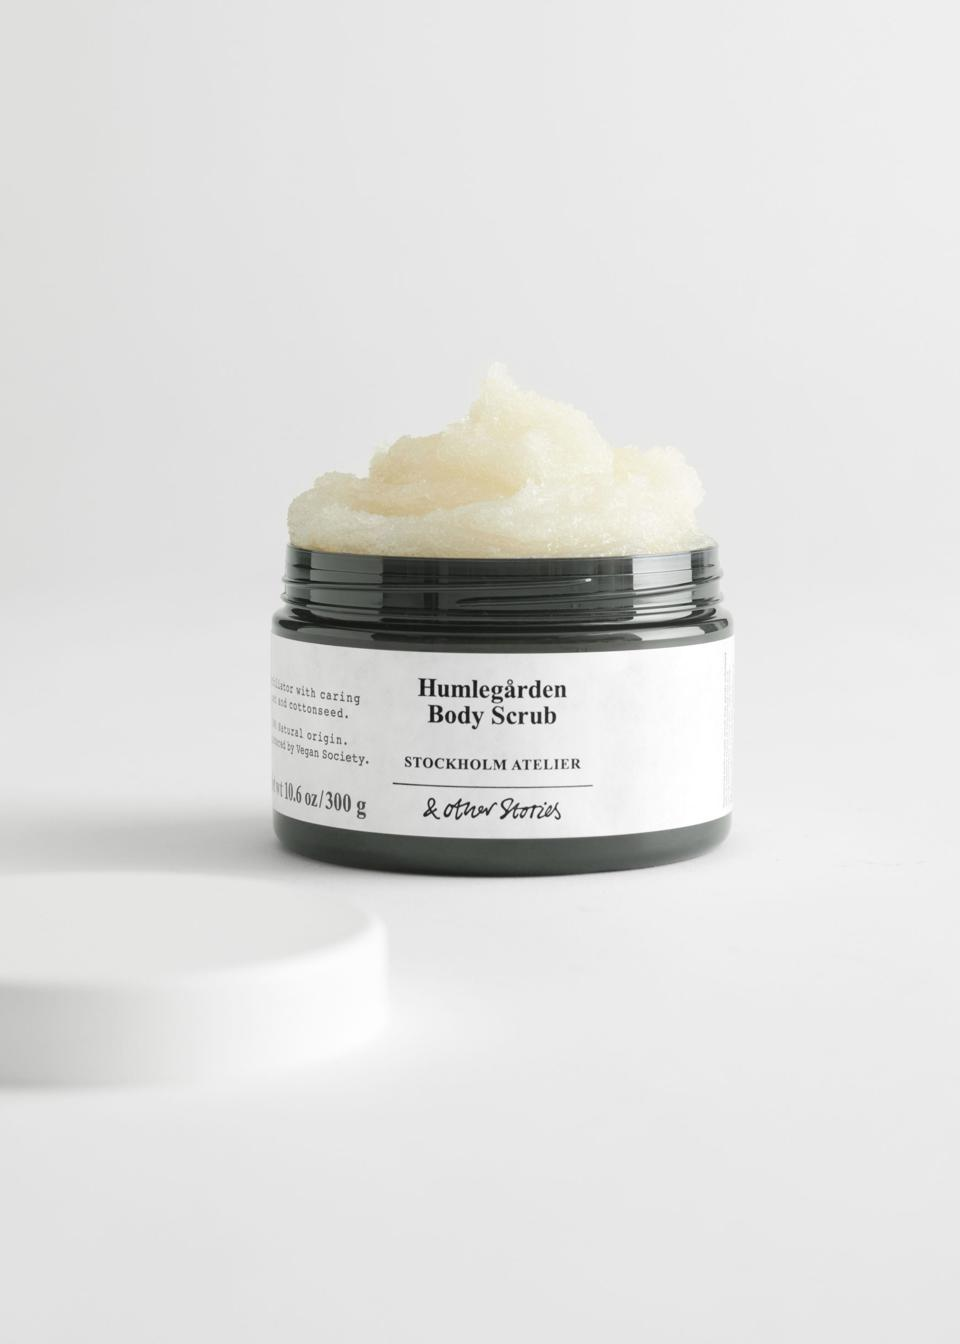 Registered by the Vegan Society, developed with a high level of natural origin and housed in bottles made from recycled PCR plastic, this renewing body sugar scrub that gently exfoliates your skin, turning it silky smooth.